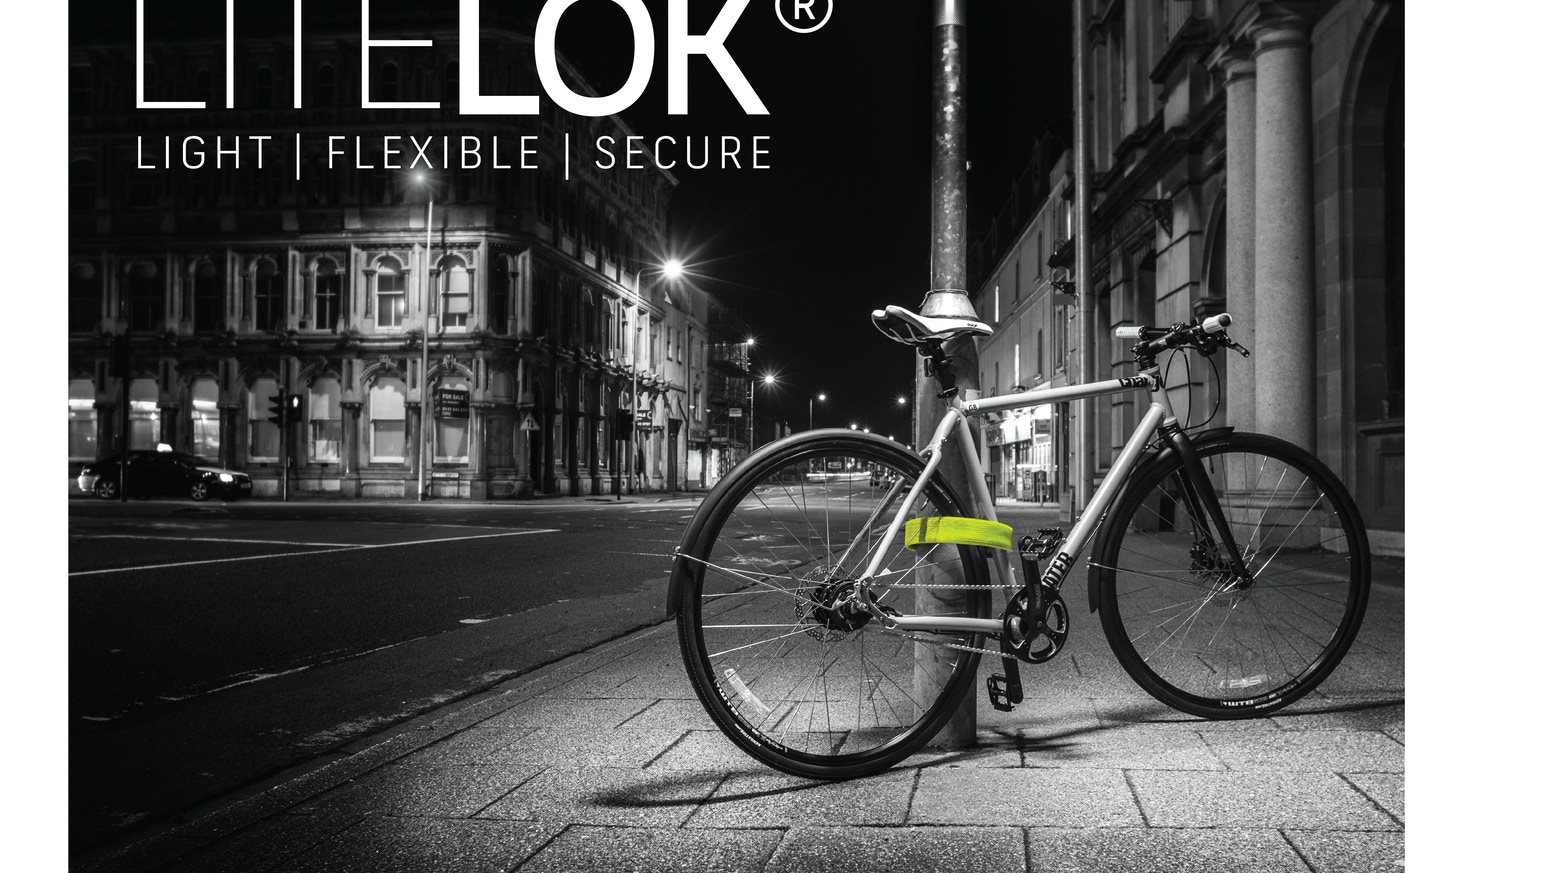 Who says bike locks need to be heavy and cumbersome to be secure? Litelok® - the worlds first light, flexible & super secure bike lock.